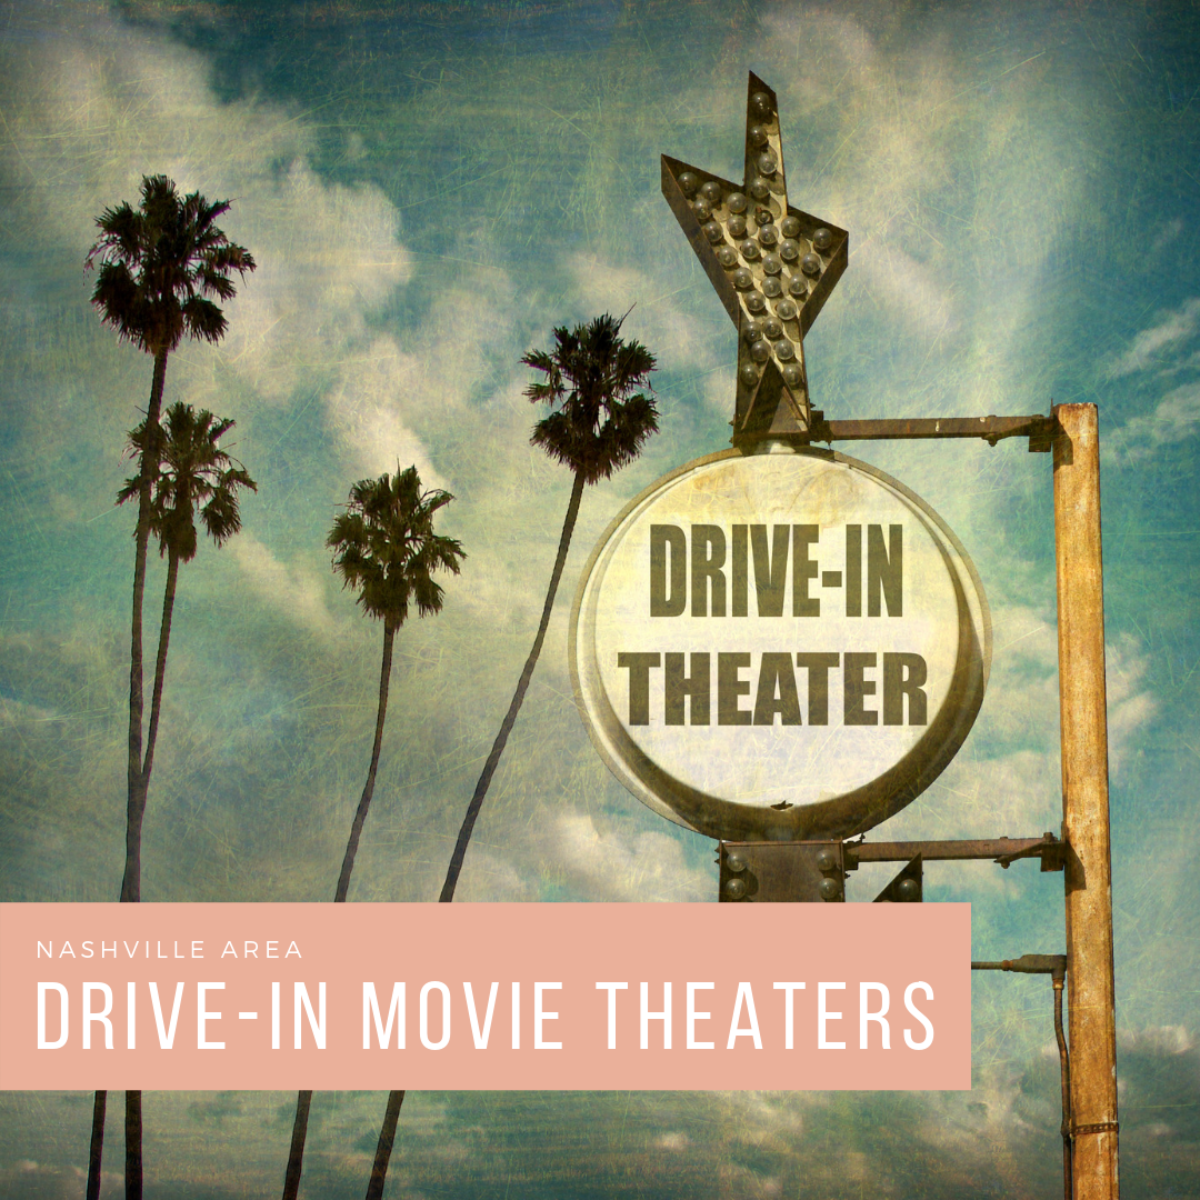 Rediscover The Drive-In Movie Experience